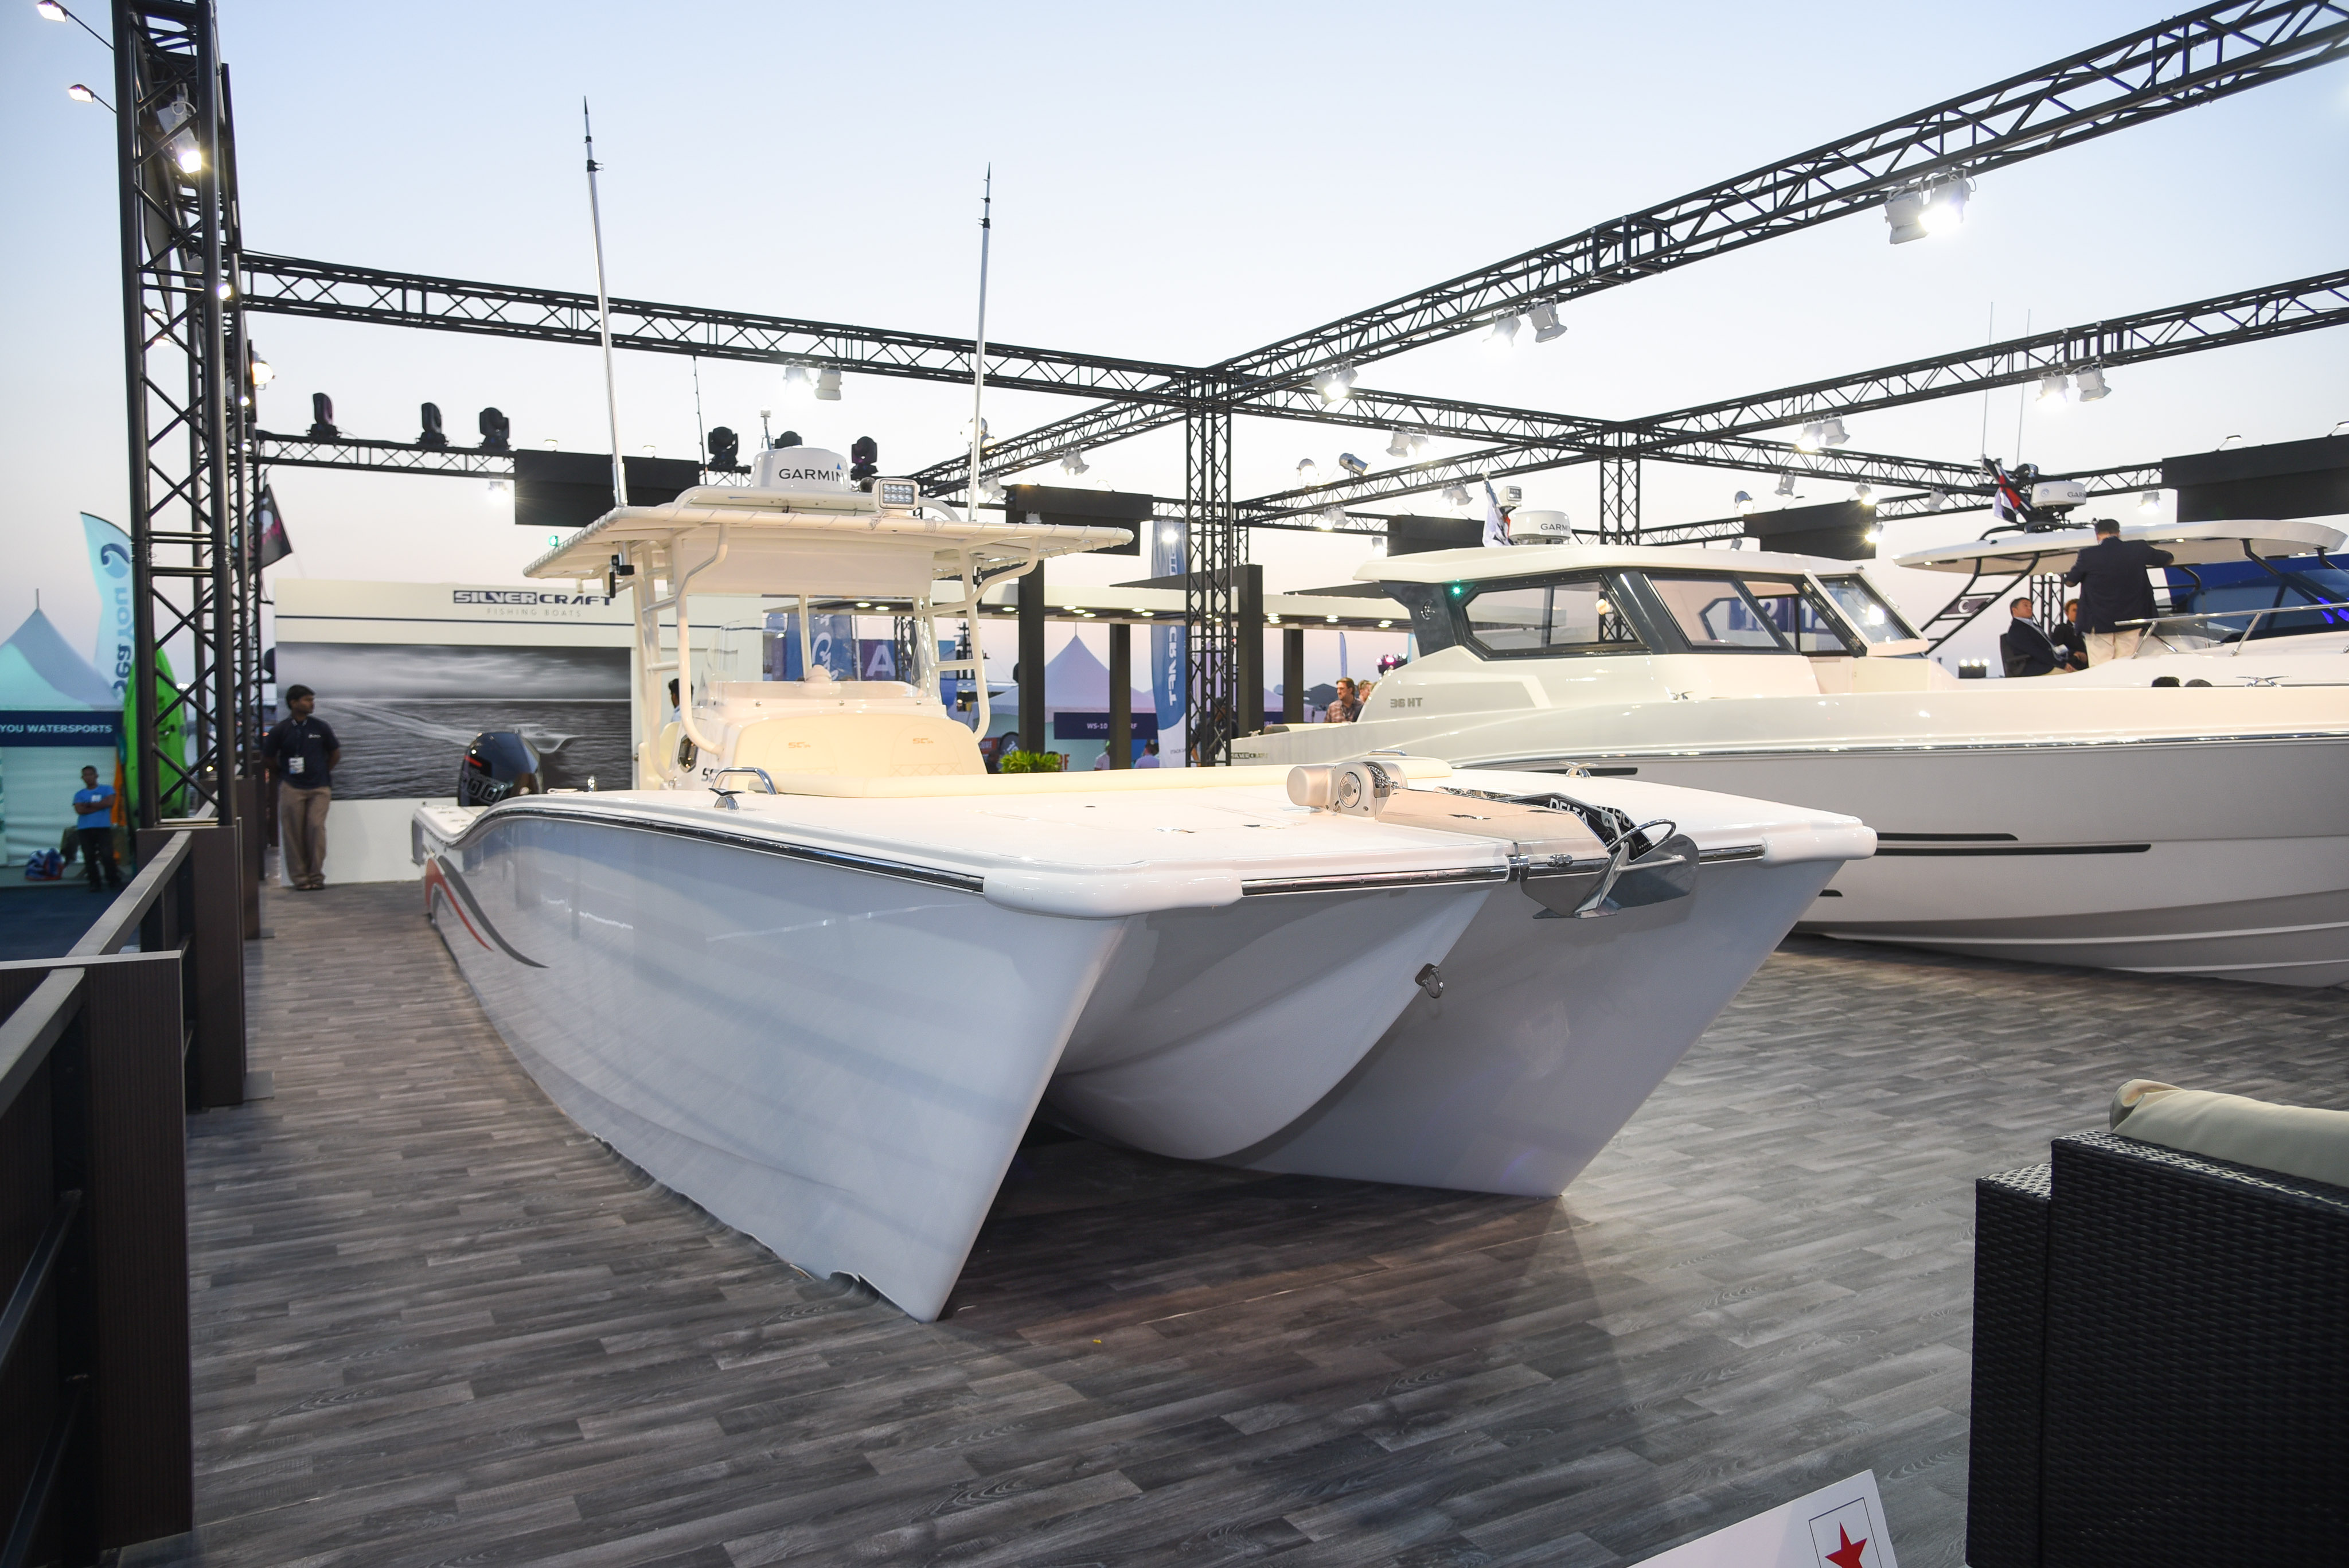 Gulf Craft at the Dubai International Boat Show 2019 (6)